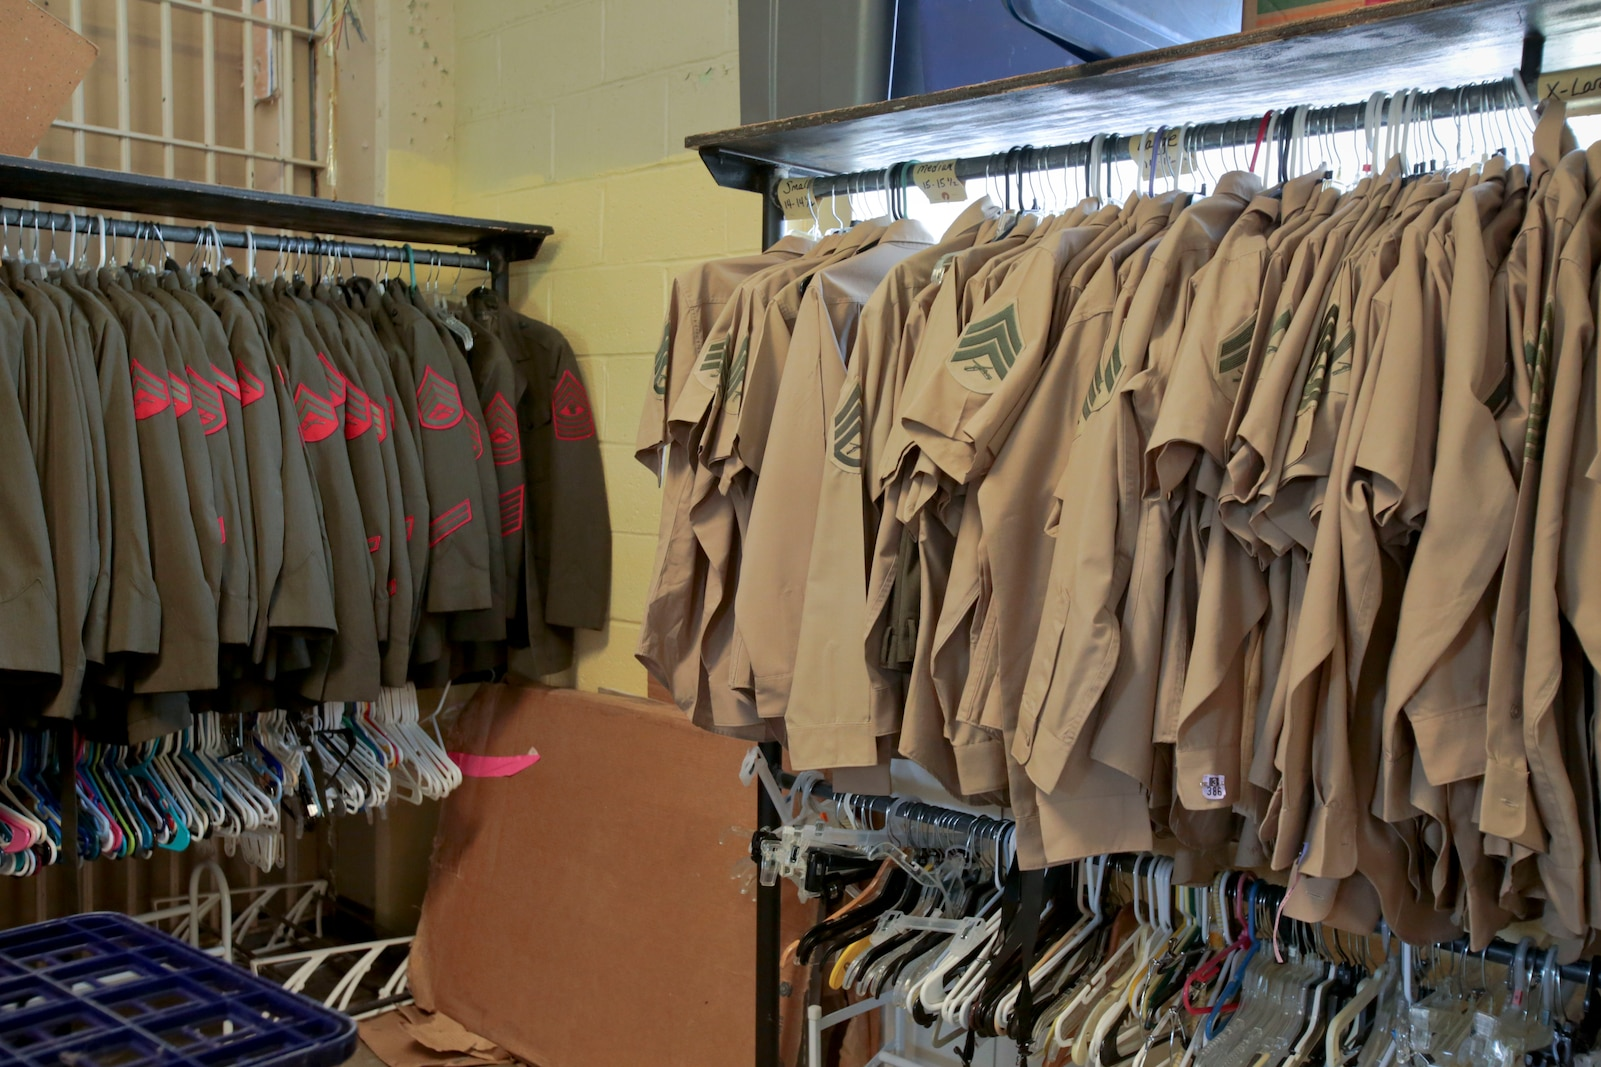 The Staff Non-Commissioned Officers Wives Thrift Shop benefited Marines stationed at Marine Corps Logistics Base Albany as well as their families. It has shared in the stories of the Marines who have walked in and out of its doors, provided goods, handed out academic scholarships and built relationships with organizations in the Albany community. The store has now closed its doors. Its legacy will live on through another nonprofit, Albany Rescue Mission. (U.S. Marine Corps photo by Jennifer Parks)